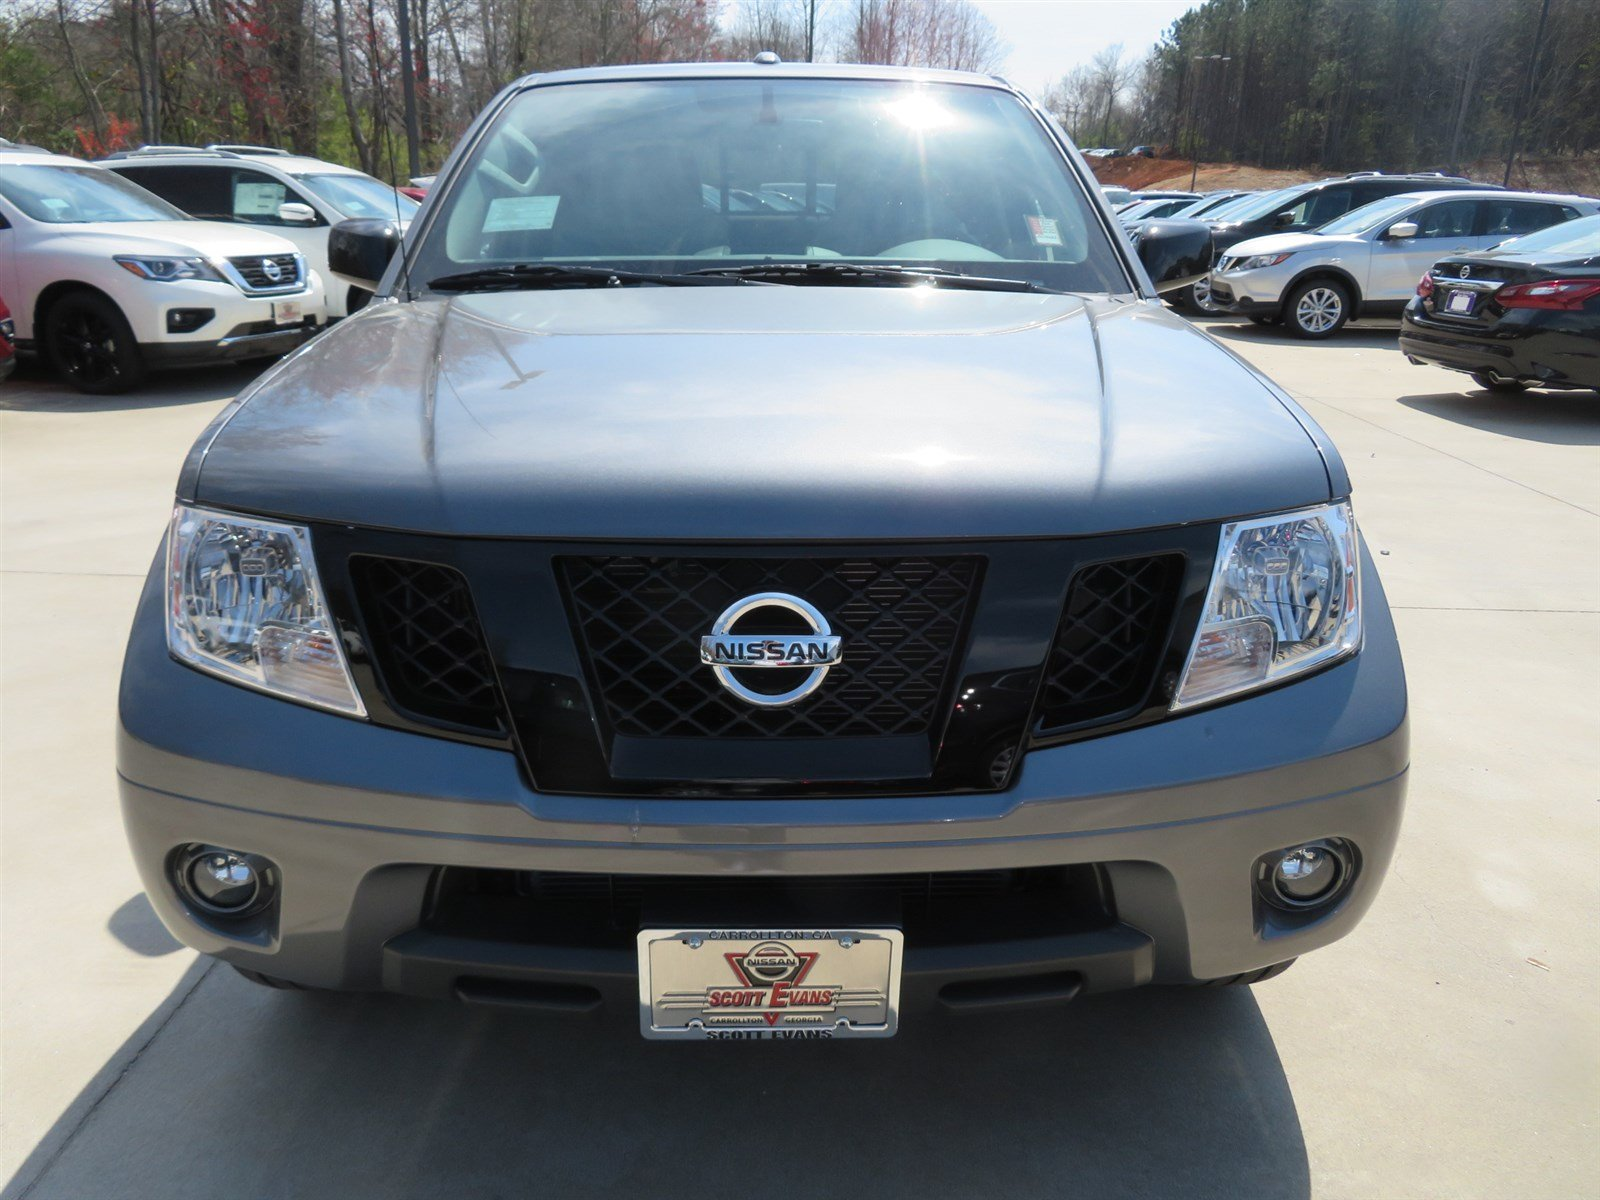 New 2018 Nissan Frontier Sv Midnight Edition Crew Cab Pickup In Front Airbag Sensor 2002 Xterra